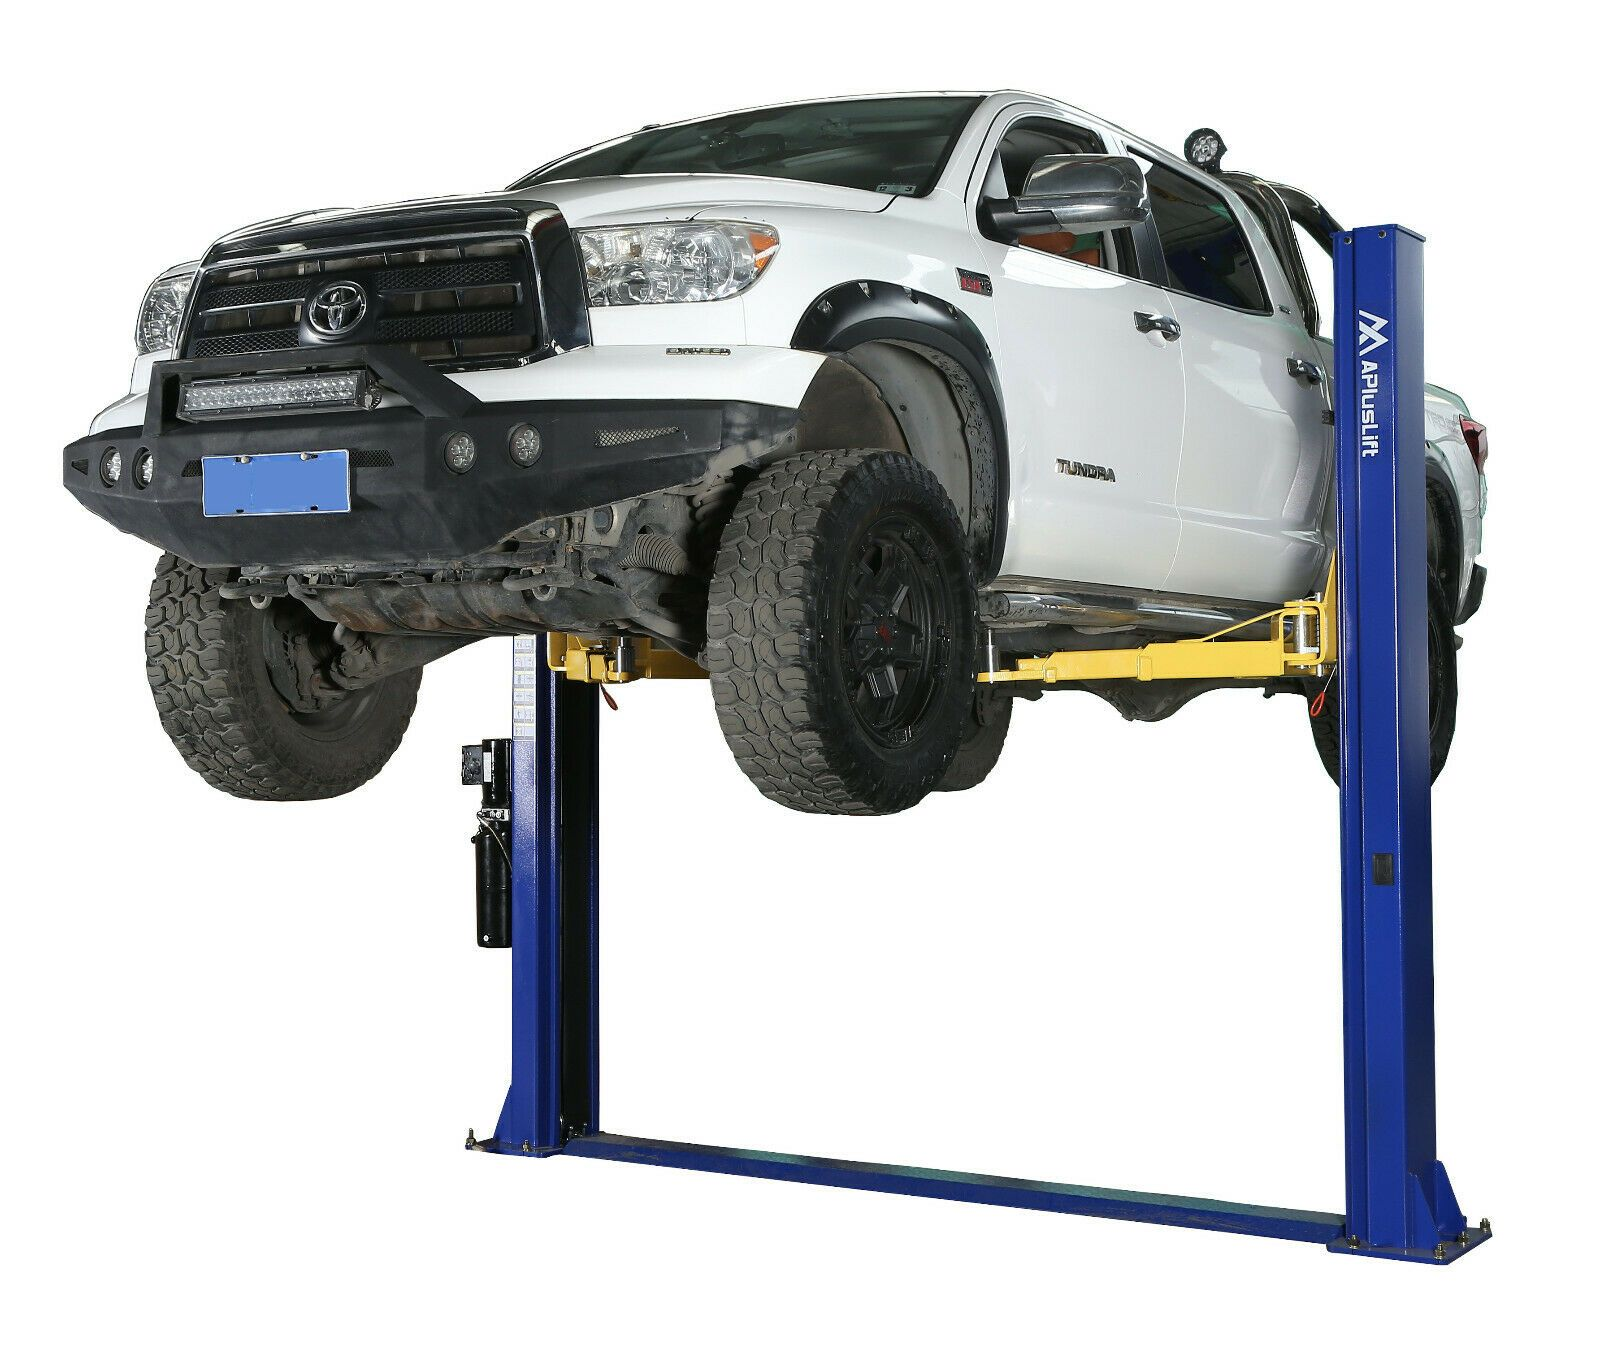 2 Post Lift in 2020 Car lifts, Car, Lifted cars